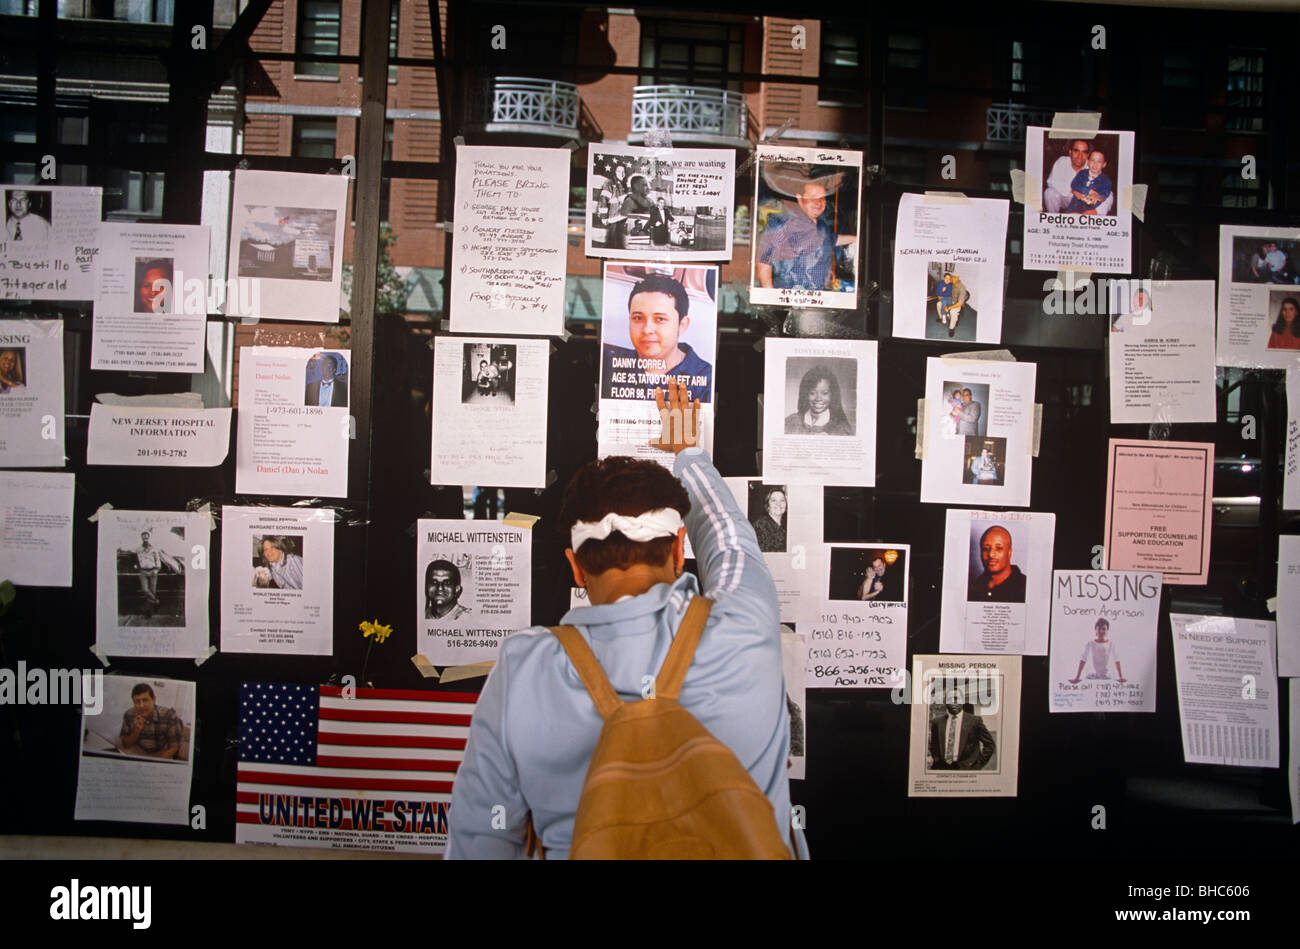 Relatives and friends remember the missing a week after the attacks on the twin towers on 9/11. - Stock Image